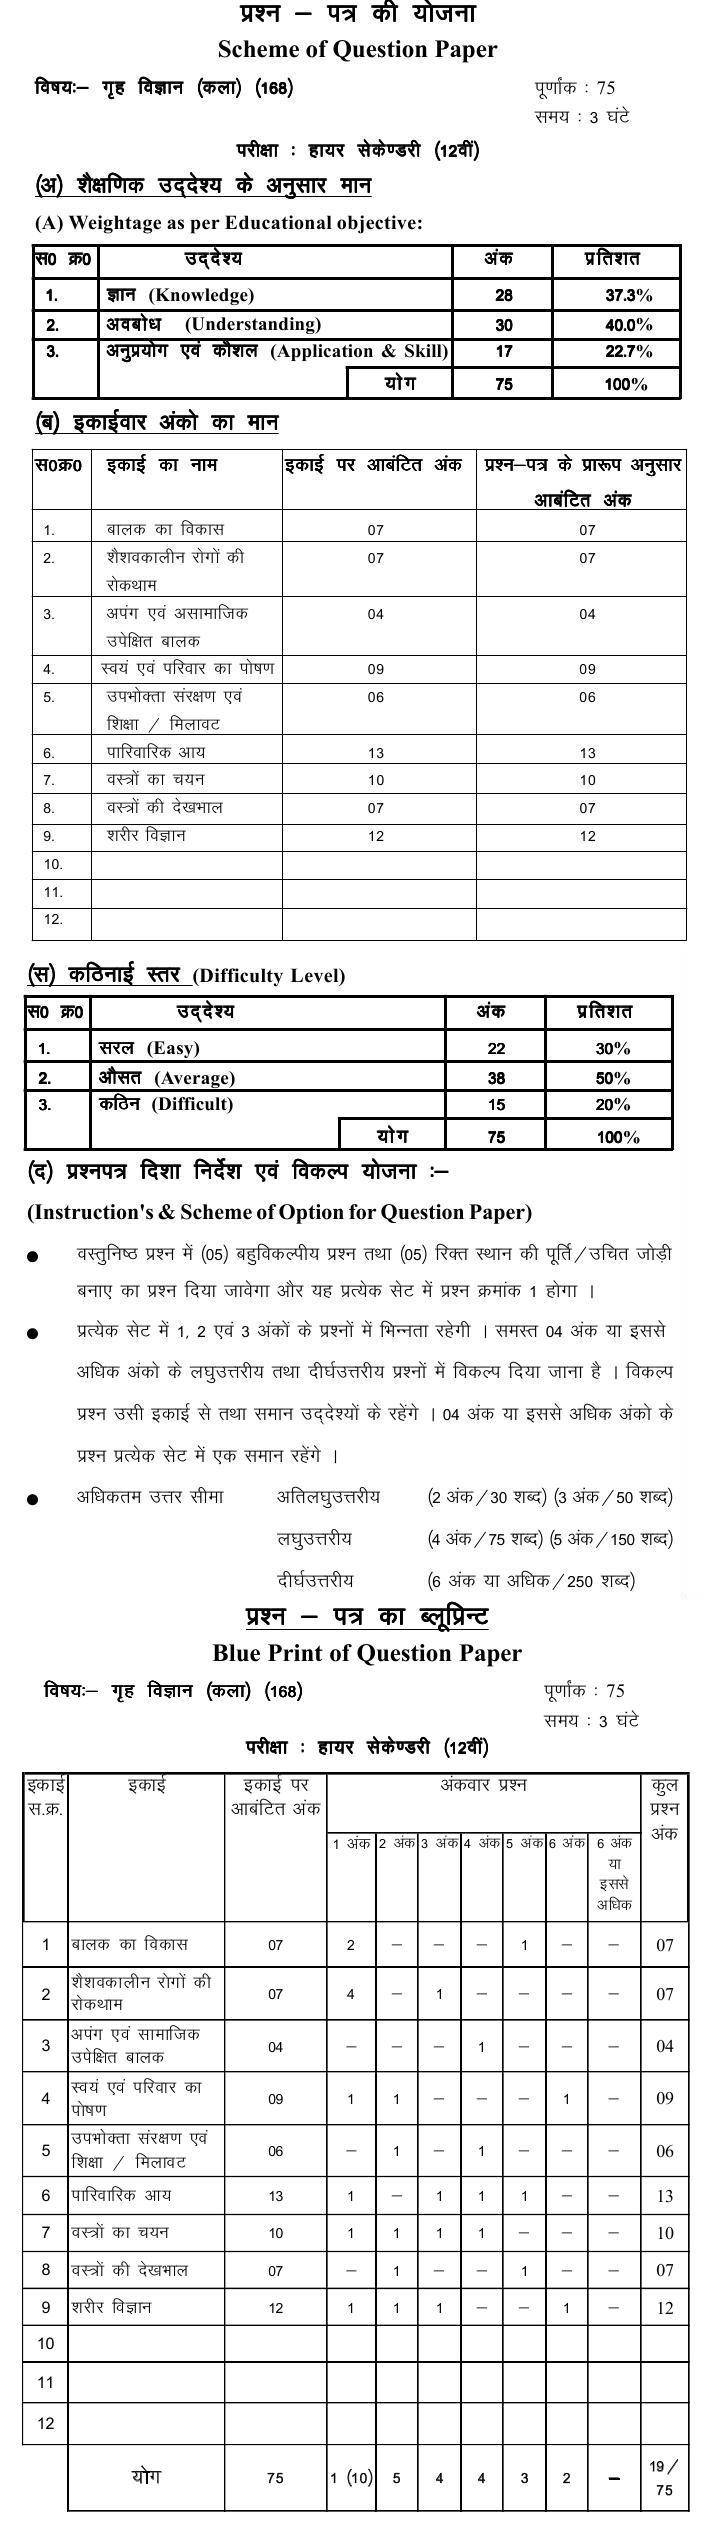 Chattisgarh Board Class 12 Scheme and Blue Print of Home Science